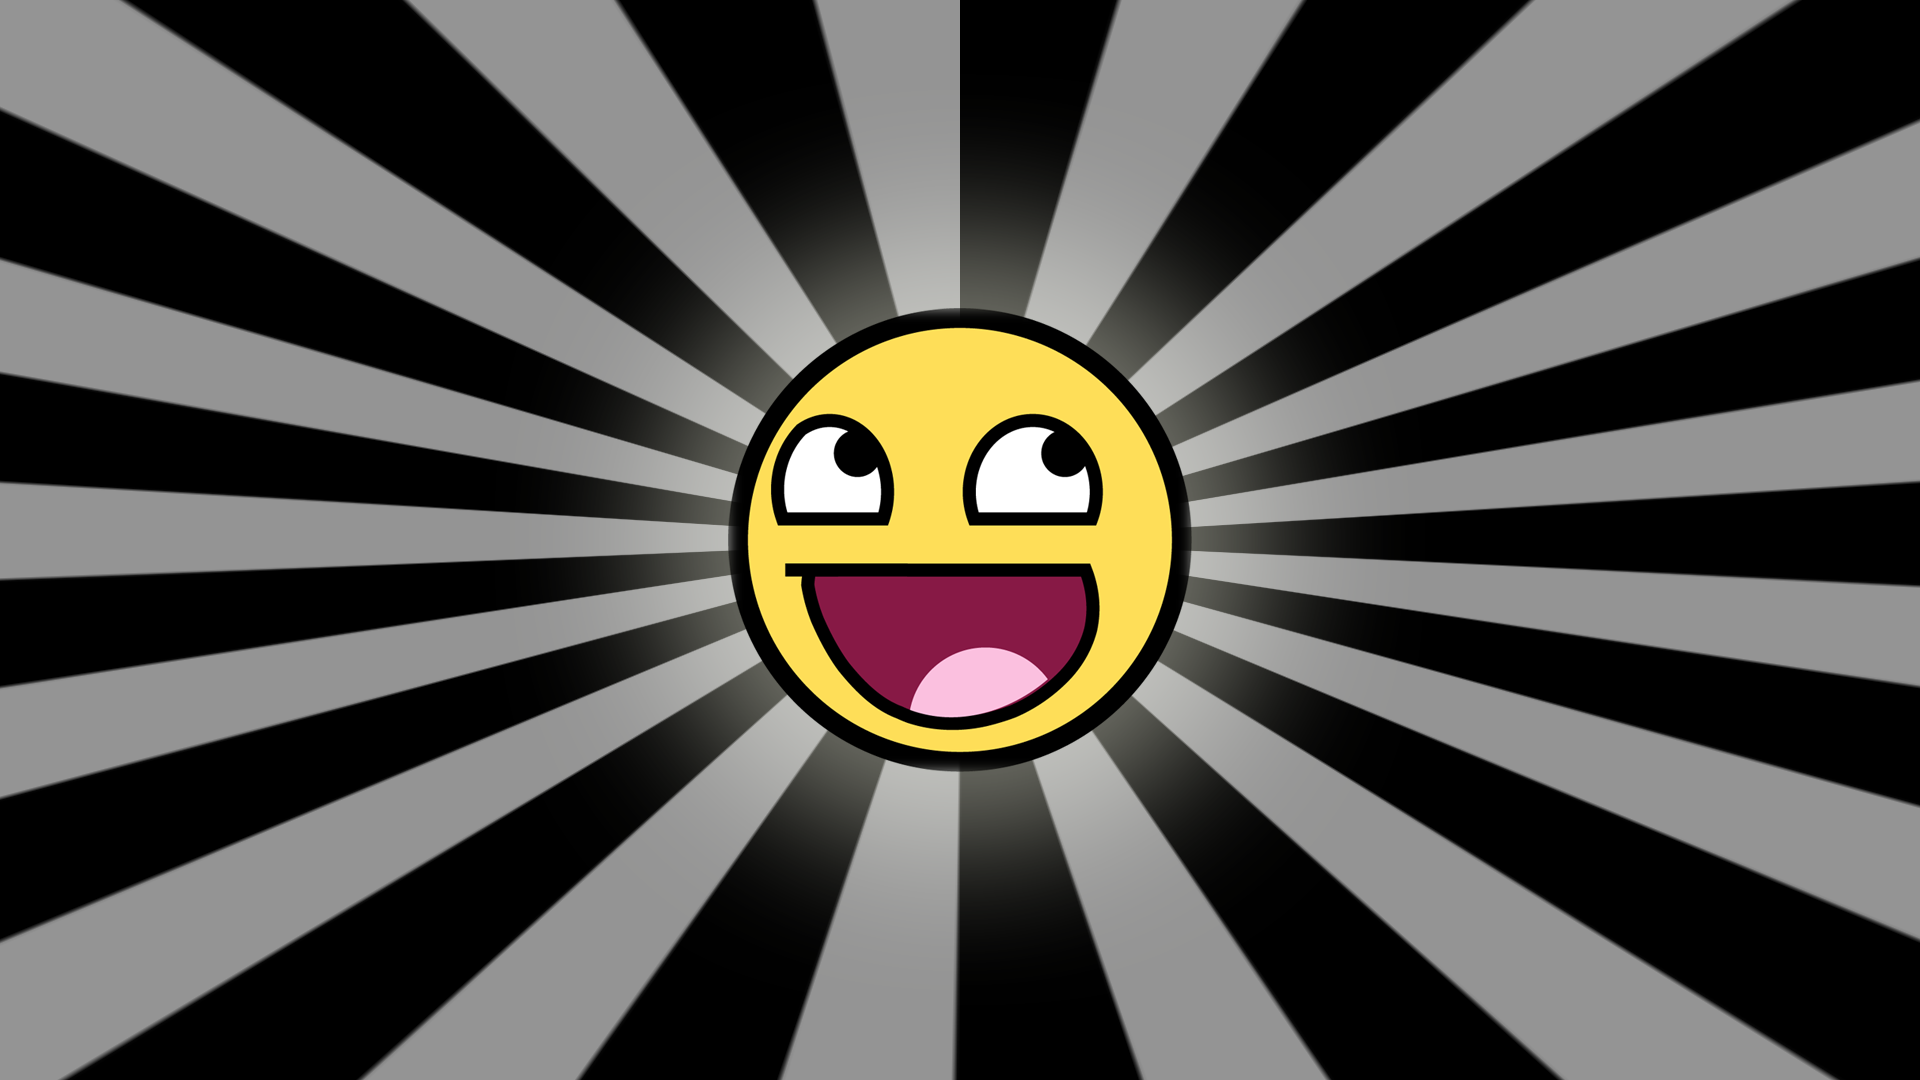 Awesome Smiley Face Wallpapers 1920x1080